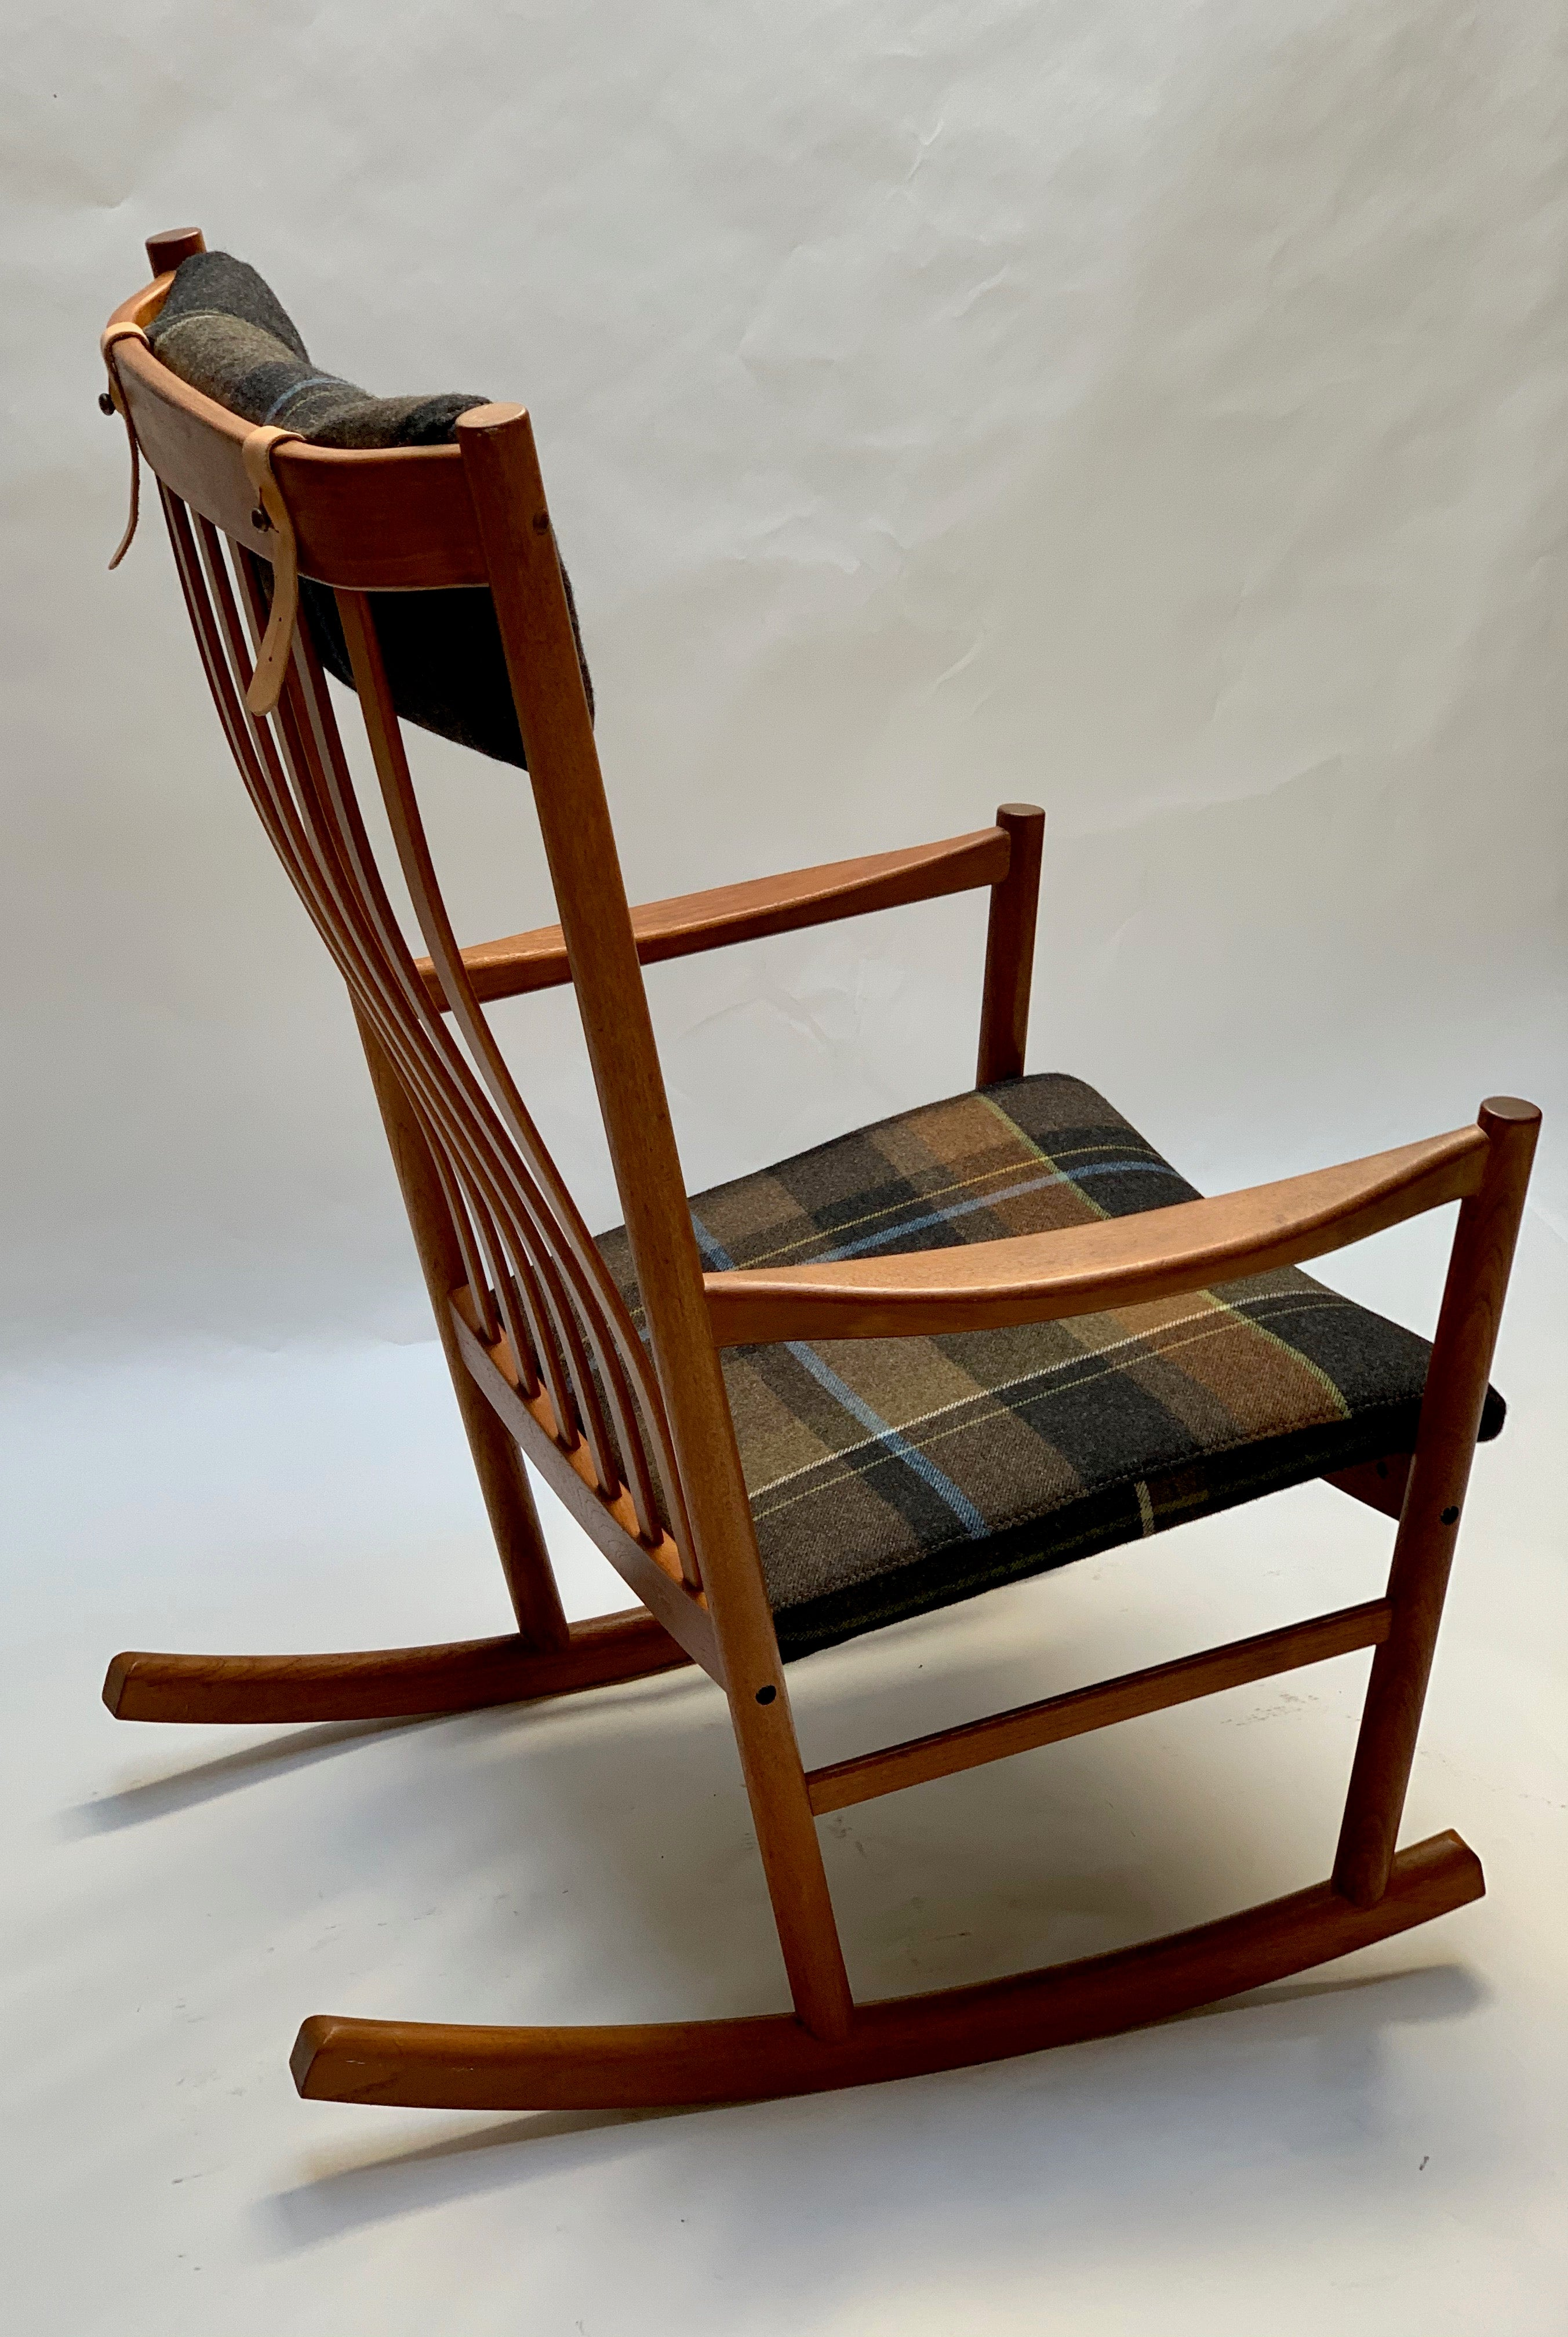 1960's Hans Wegner for Tarm Stole Teak and Wool Rocking Chair